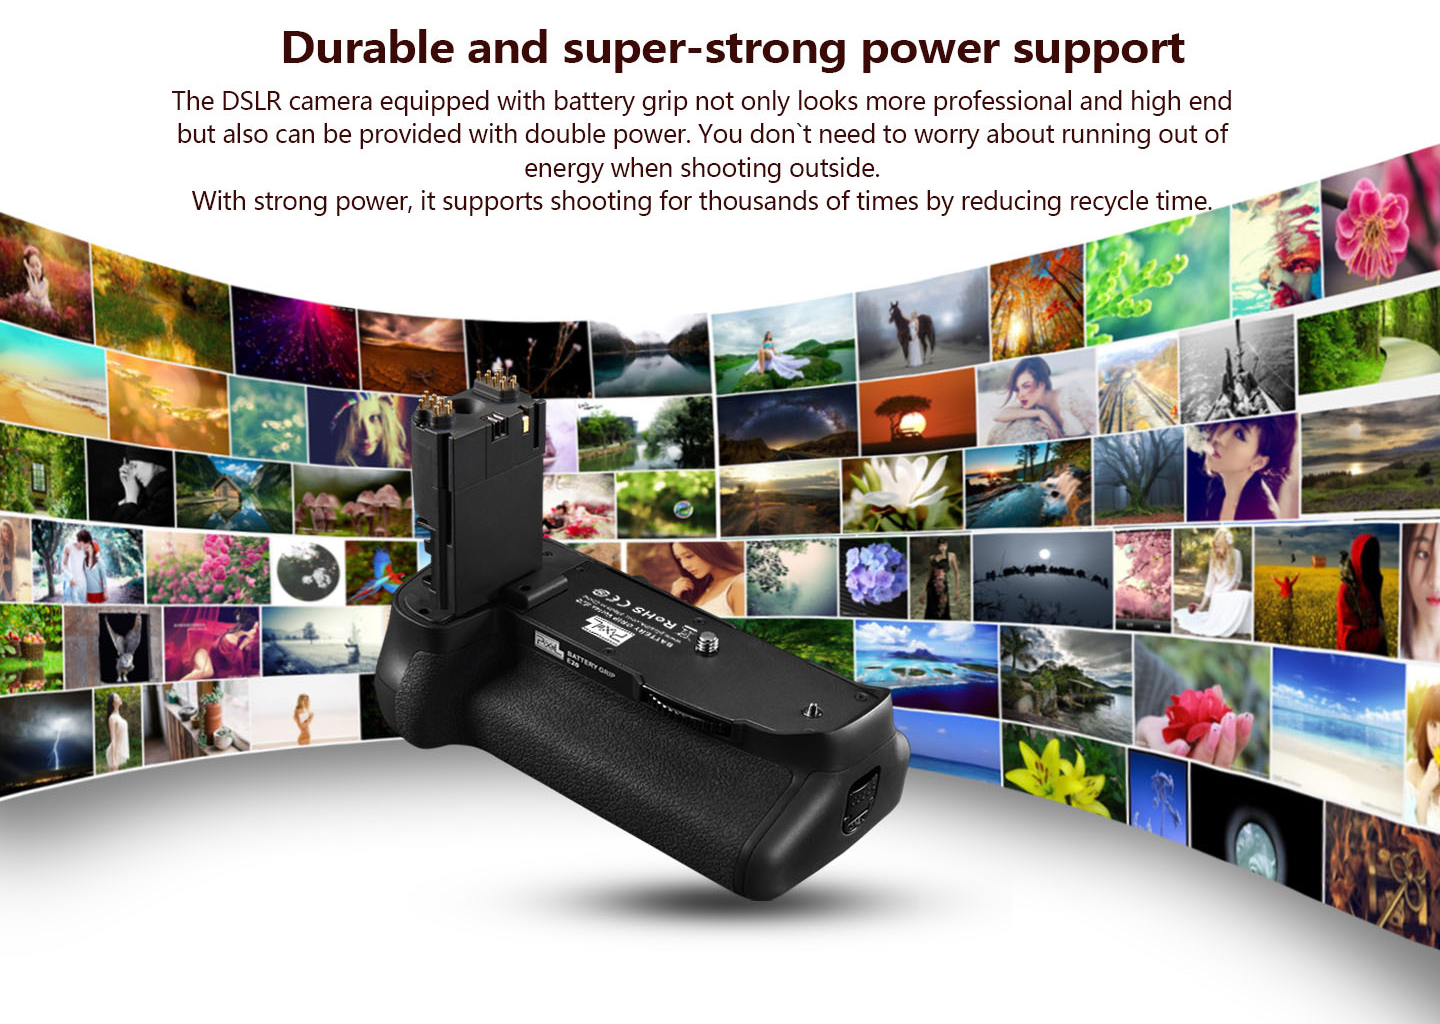 Durable and super-strong power support